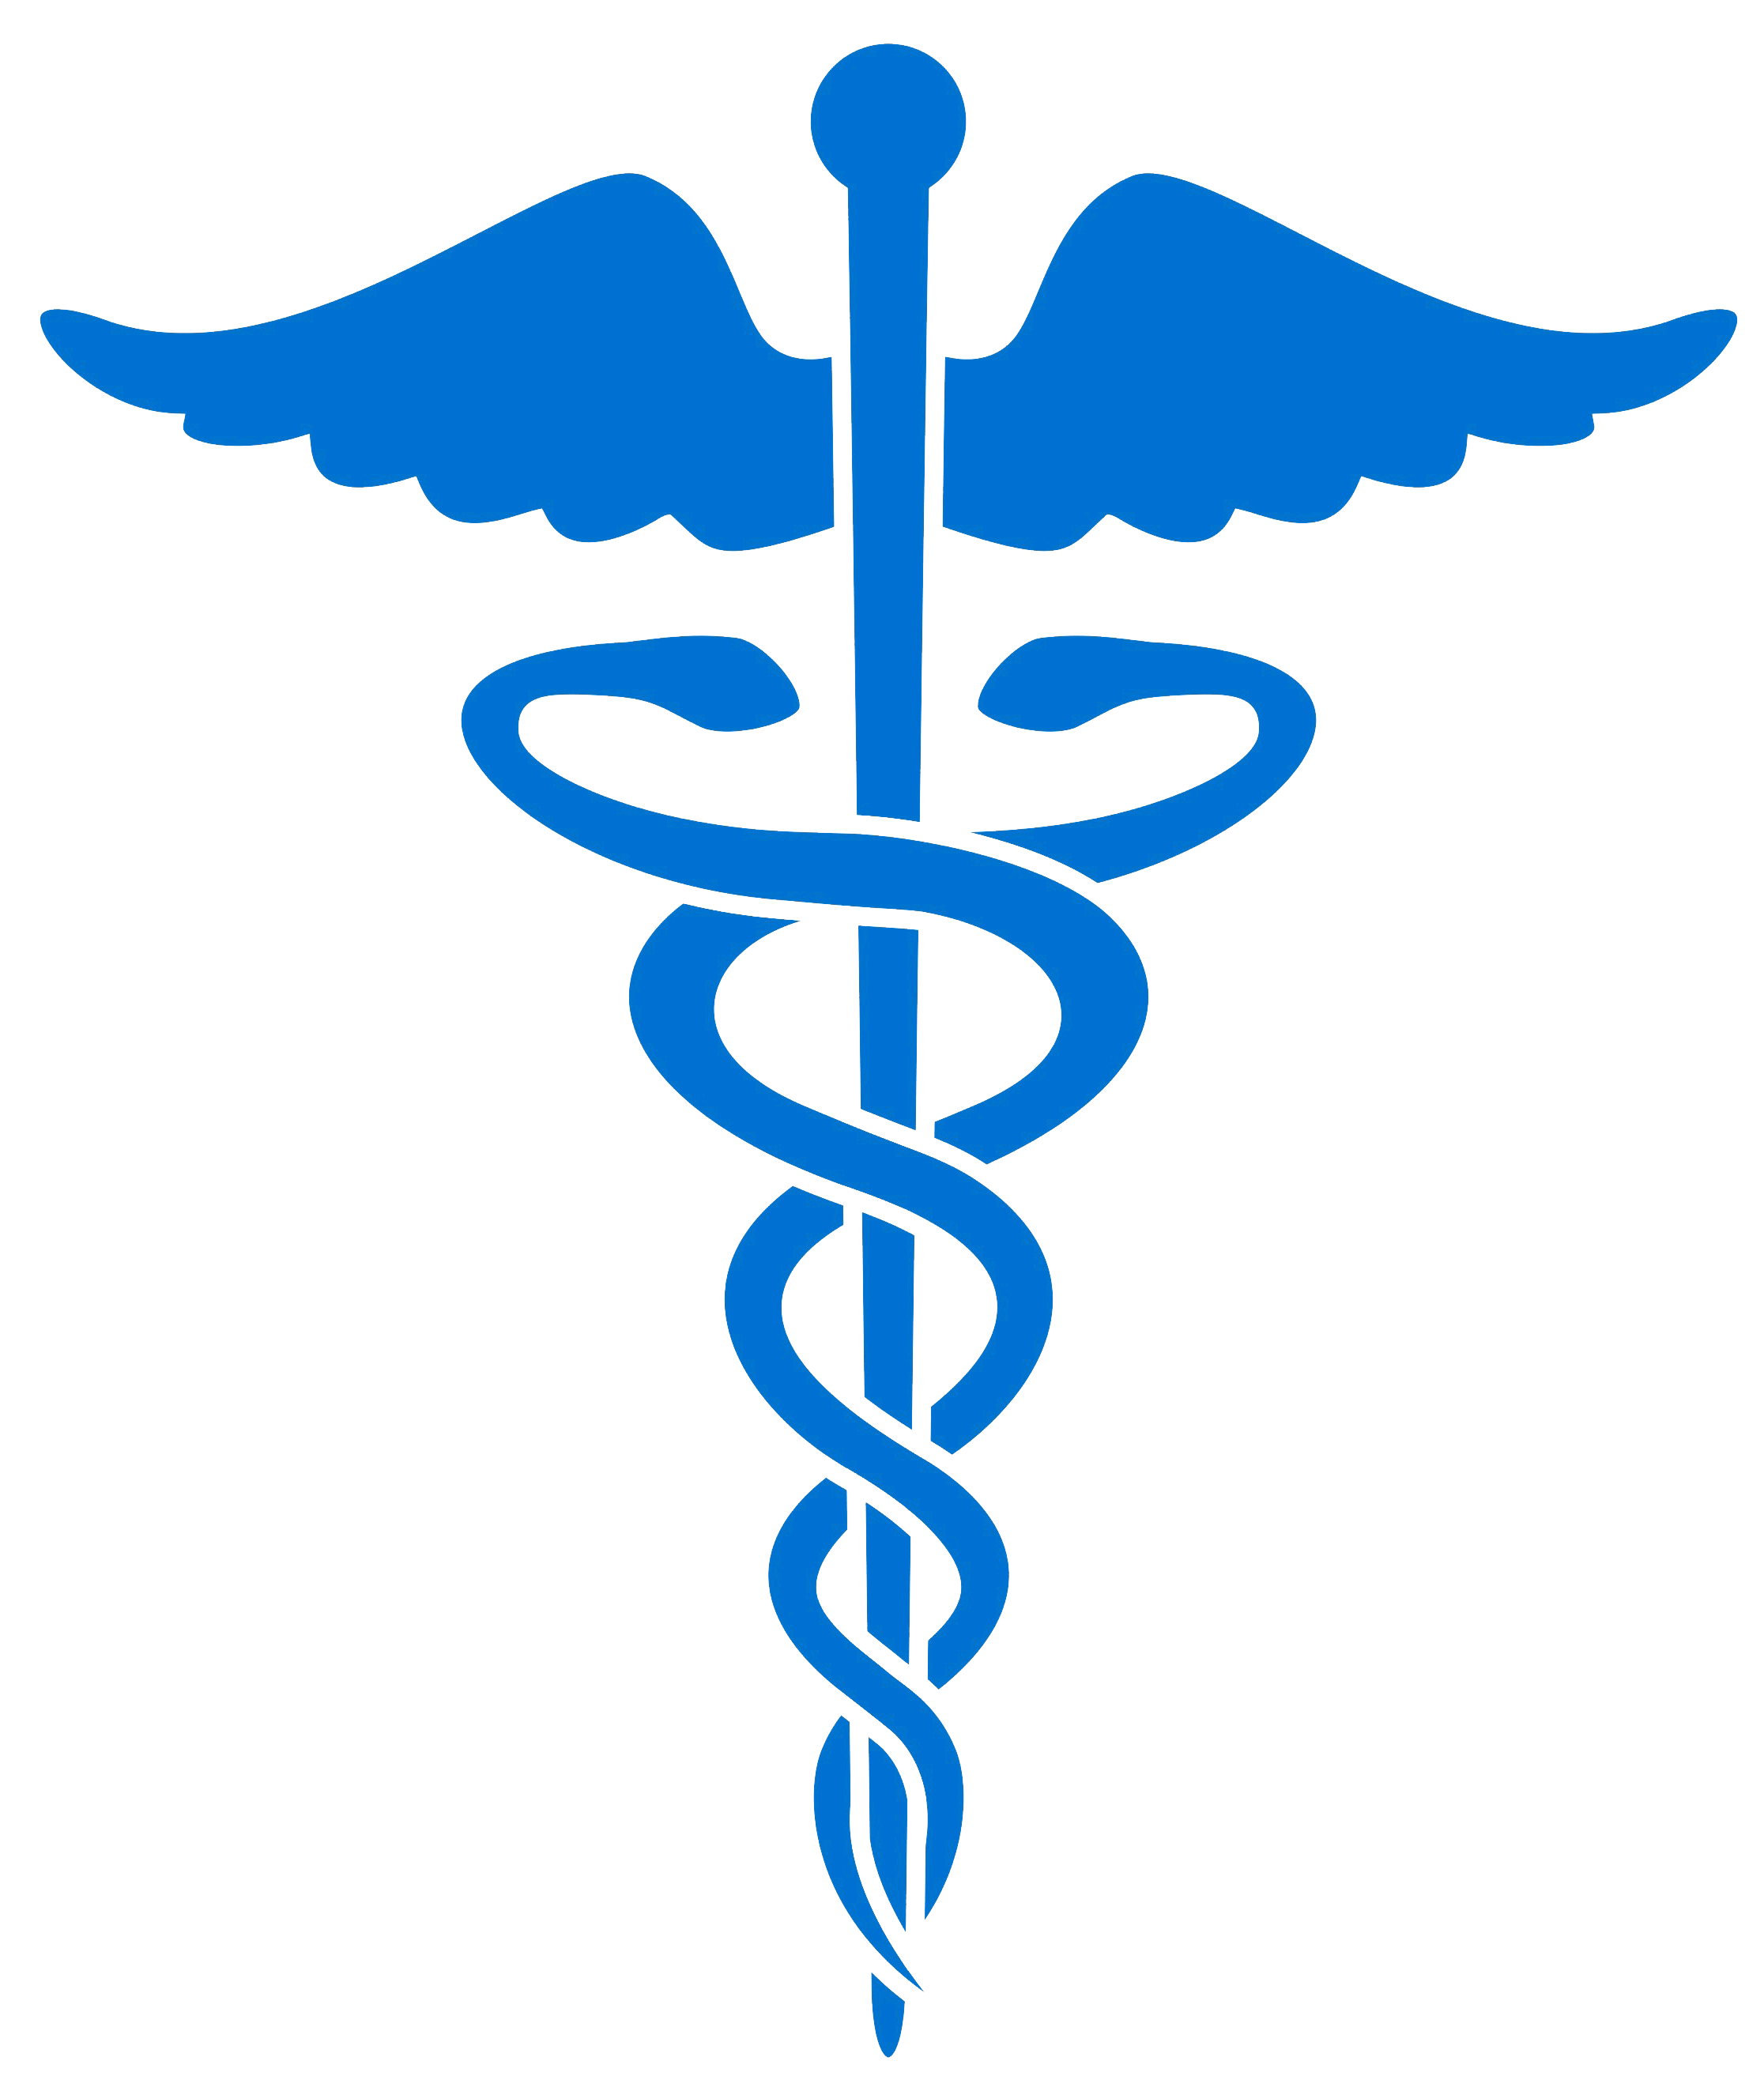 Medical cross clipart free download Medical Symbol Cliparts - Cliparts Zone free download